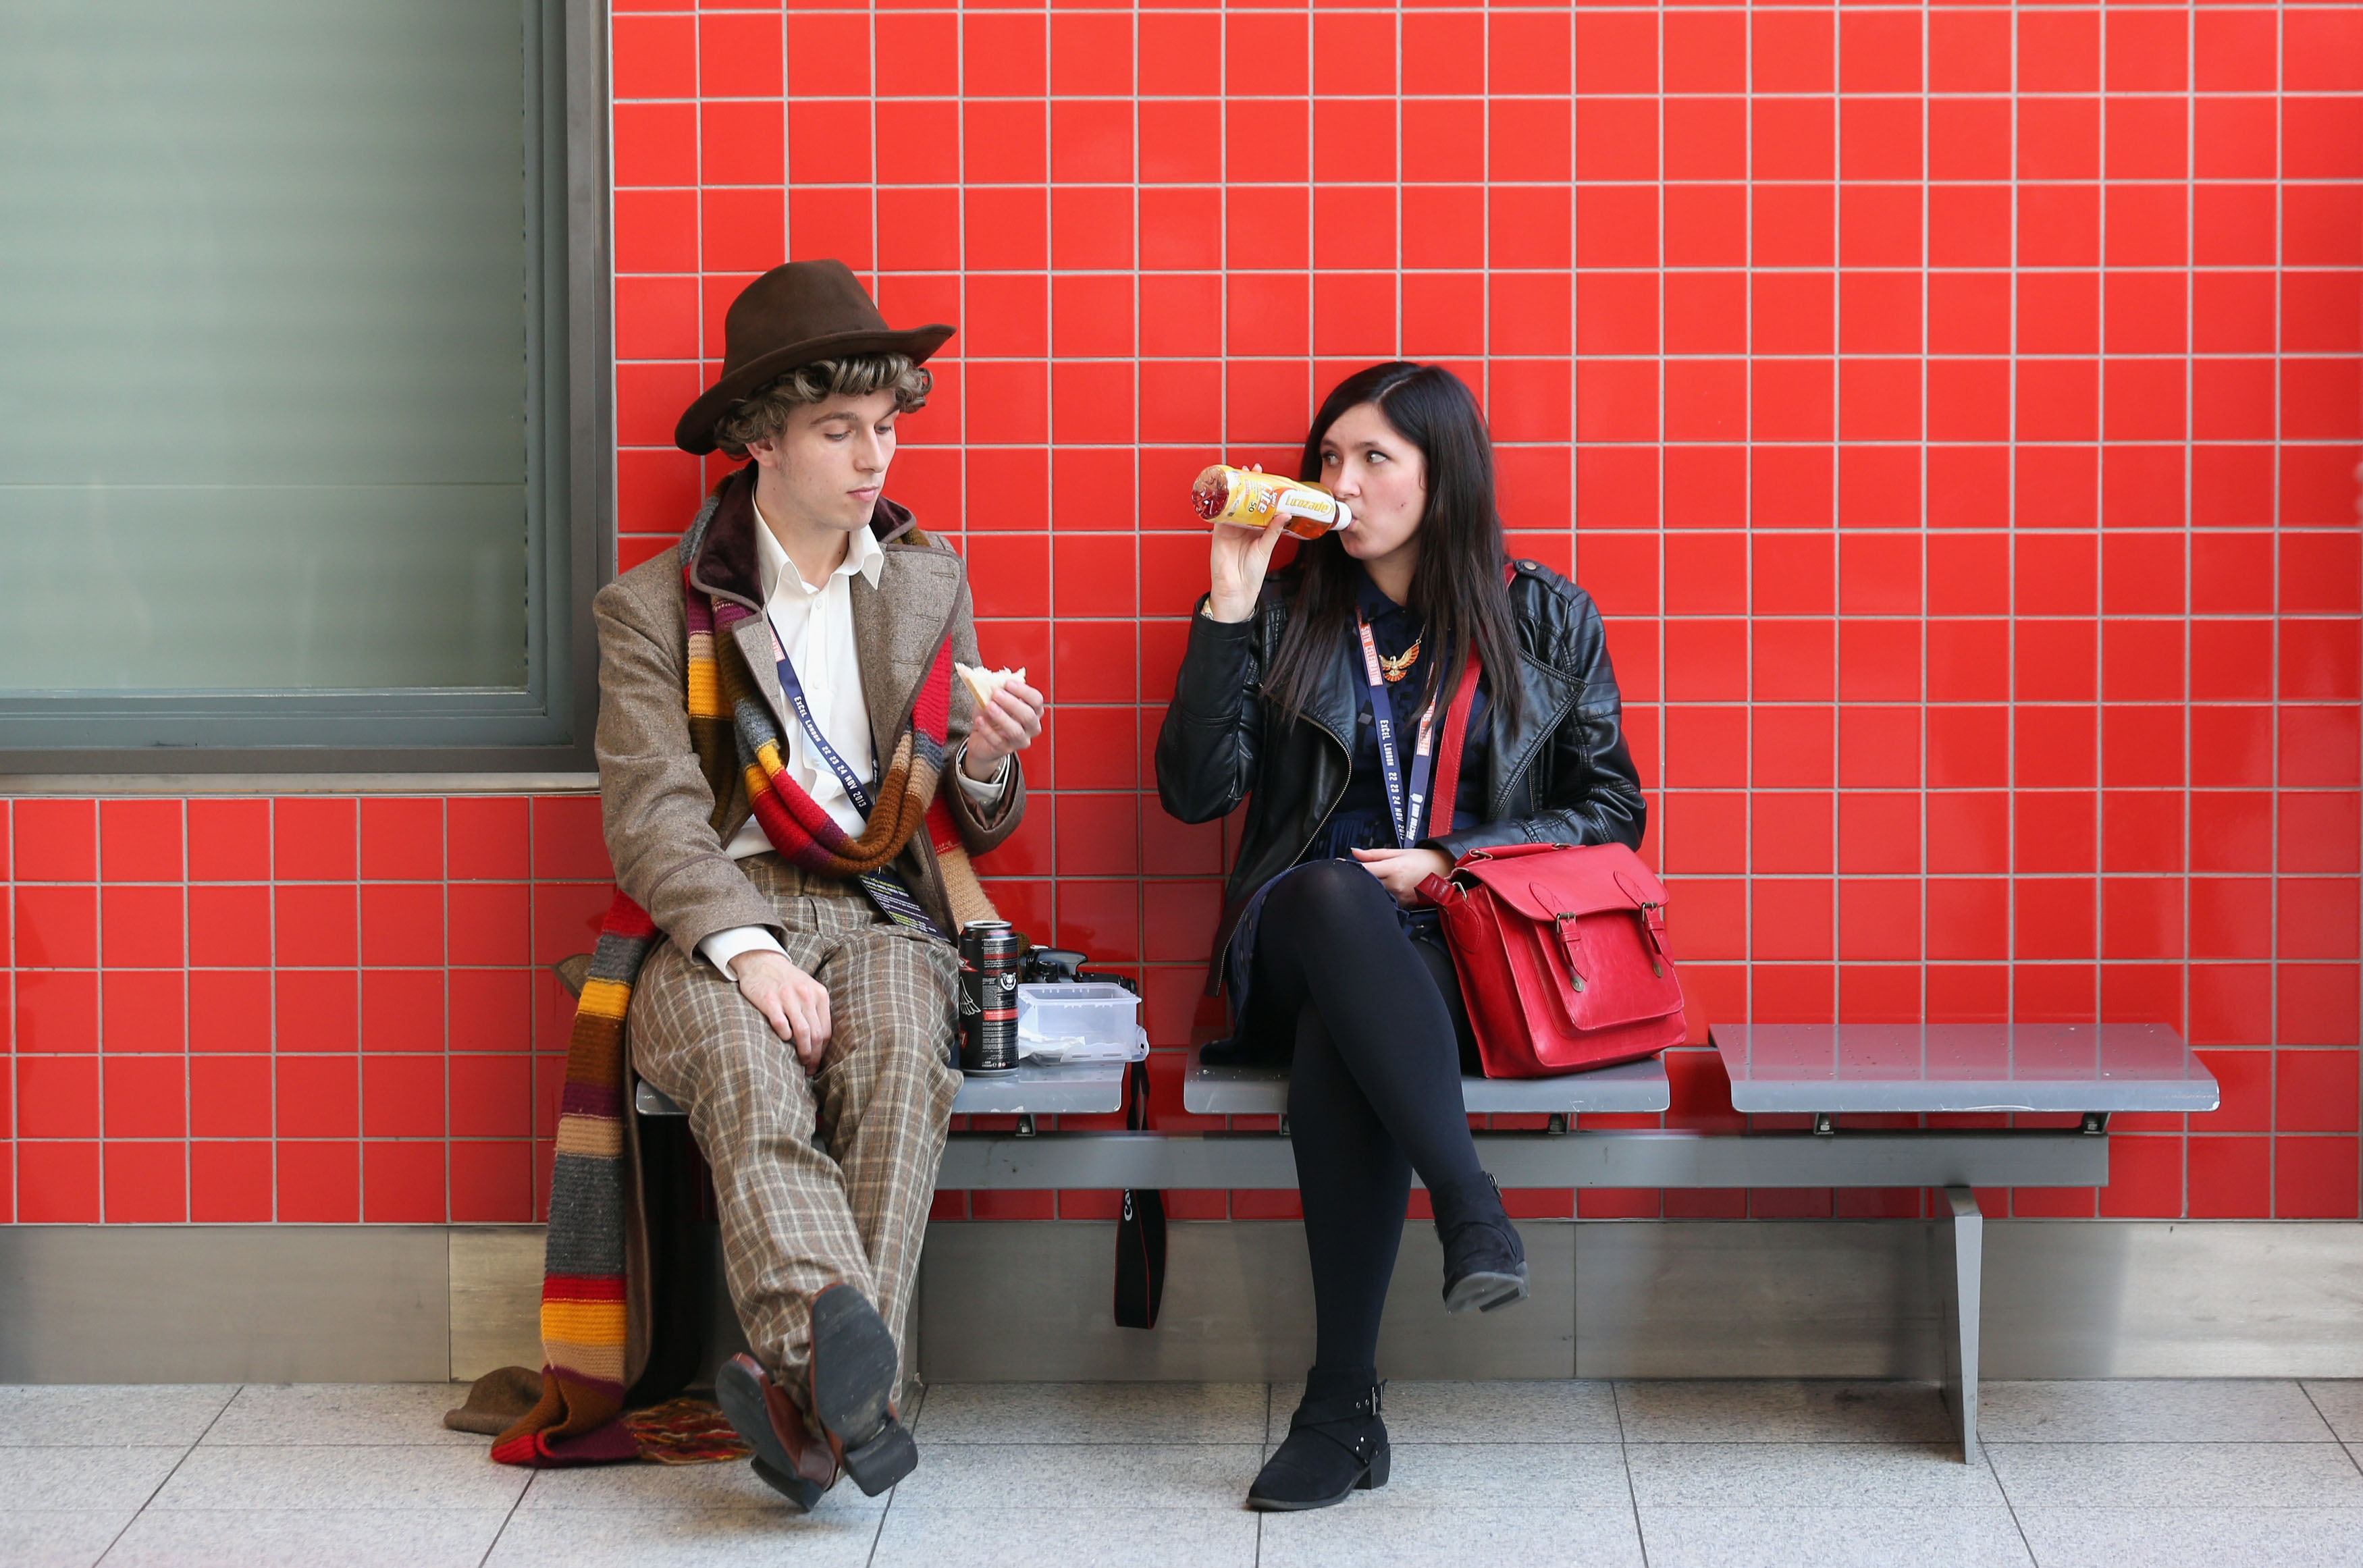 Doctor Who 50th Celebration: 10 things to expect at the Doctor Who convention